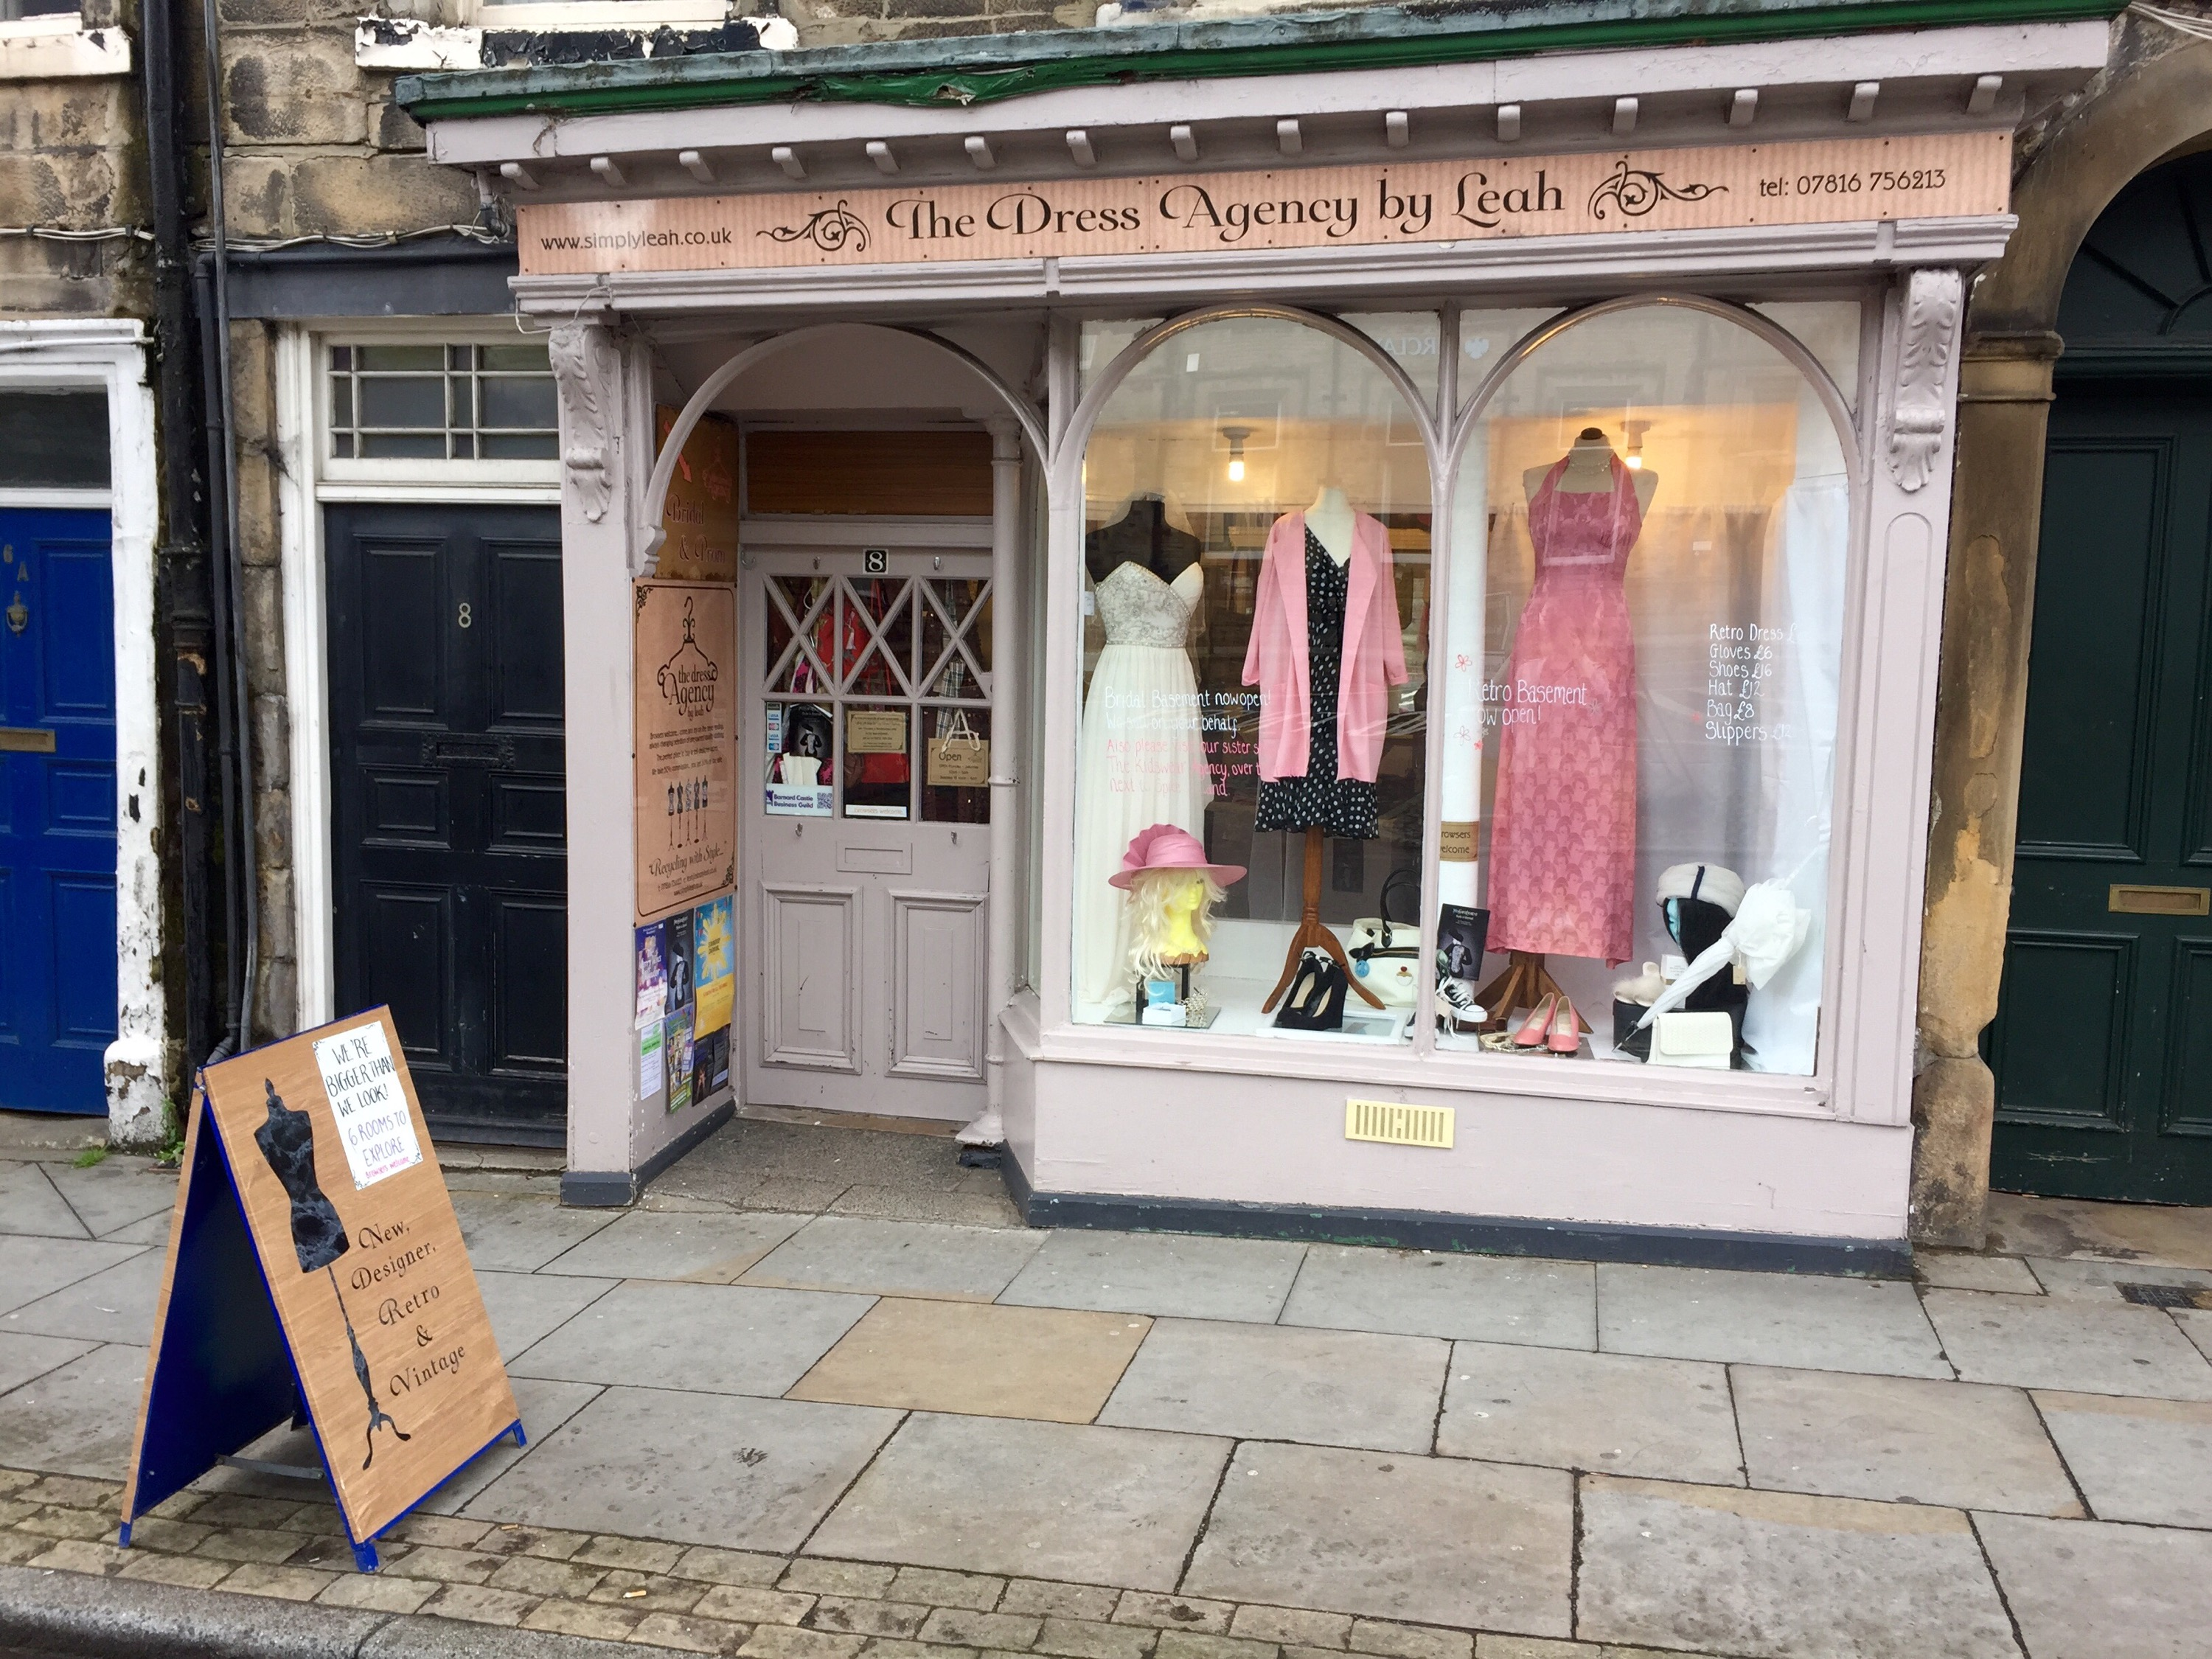 The dress agency - I Was Enticed Into The Shop By A Window Display Showcasing An Outfit Jackie O Or Marilyn Would Have Rocked In Their Hey Day The Handmade Salmon Pink Halter